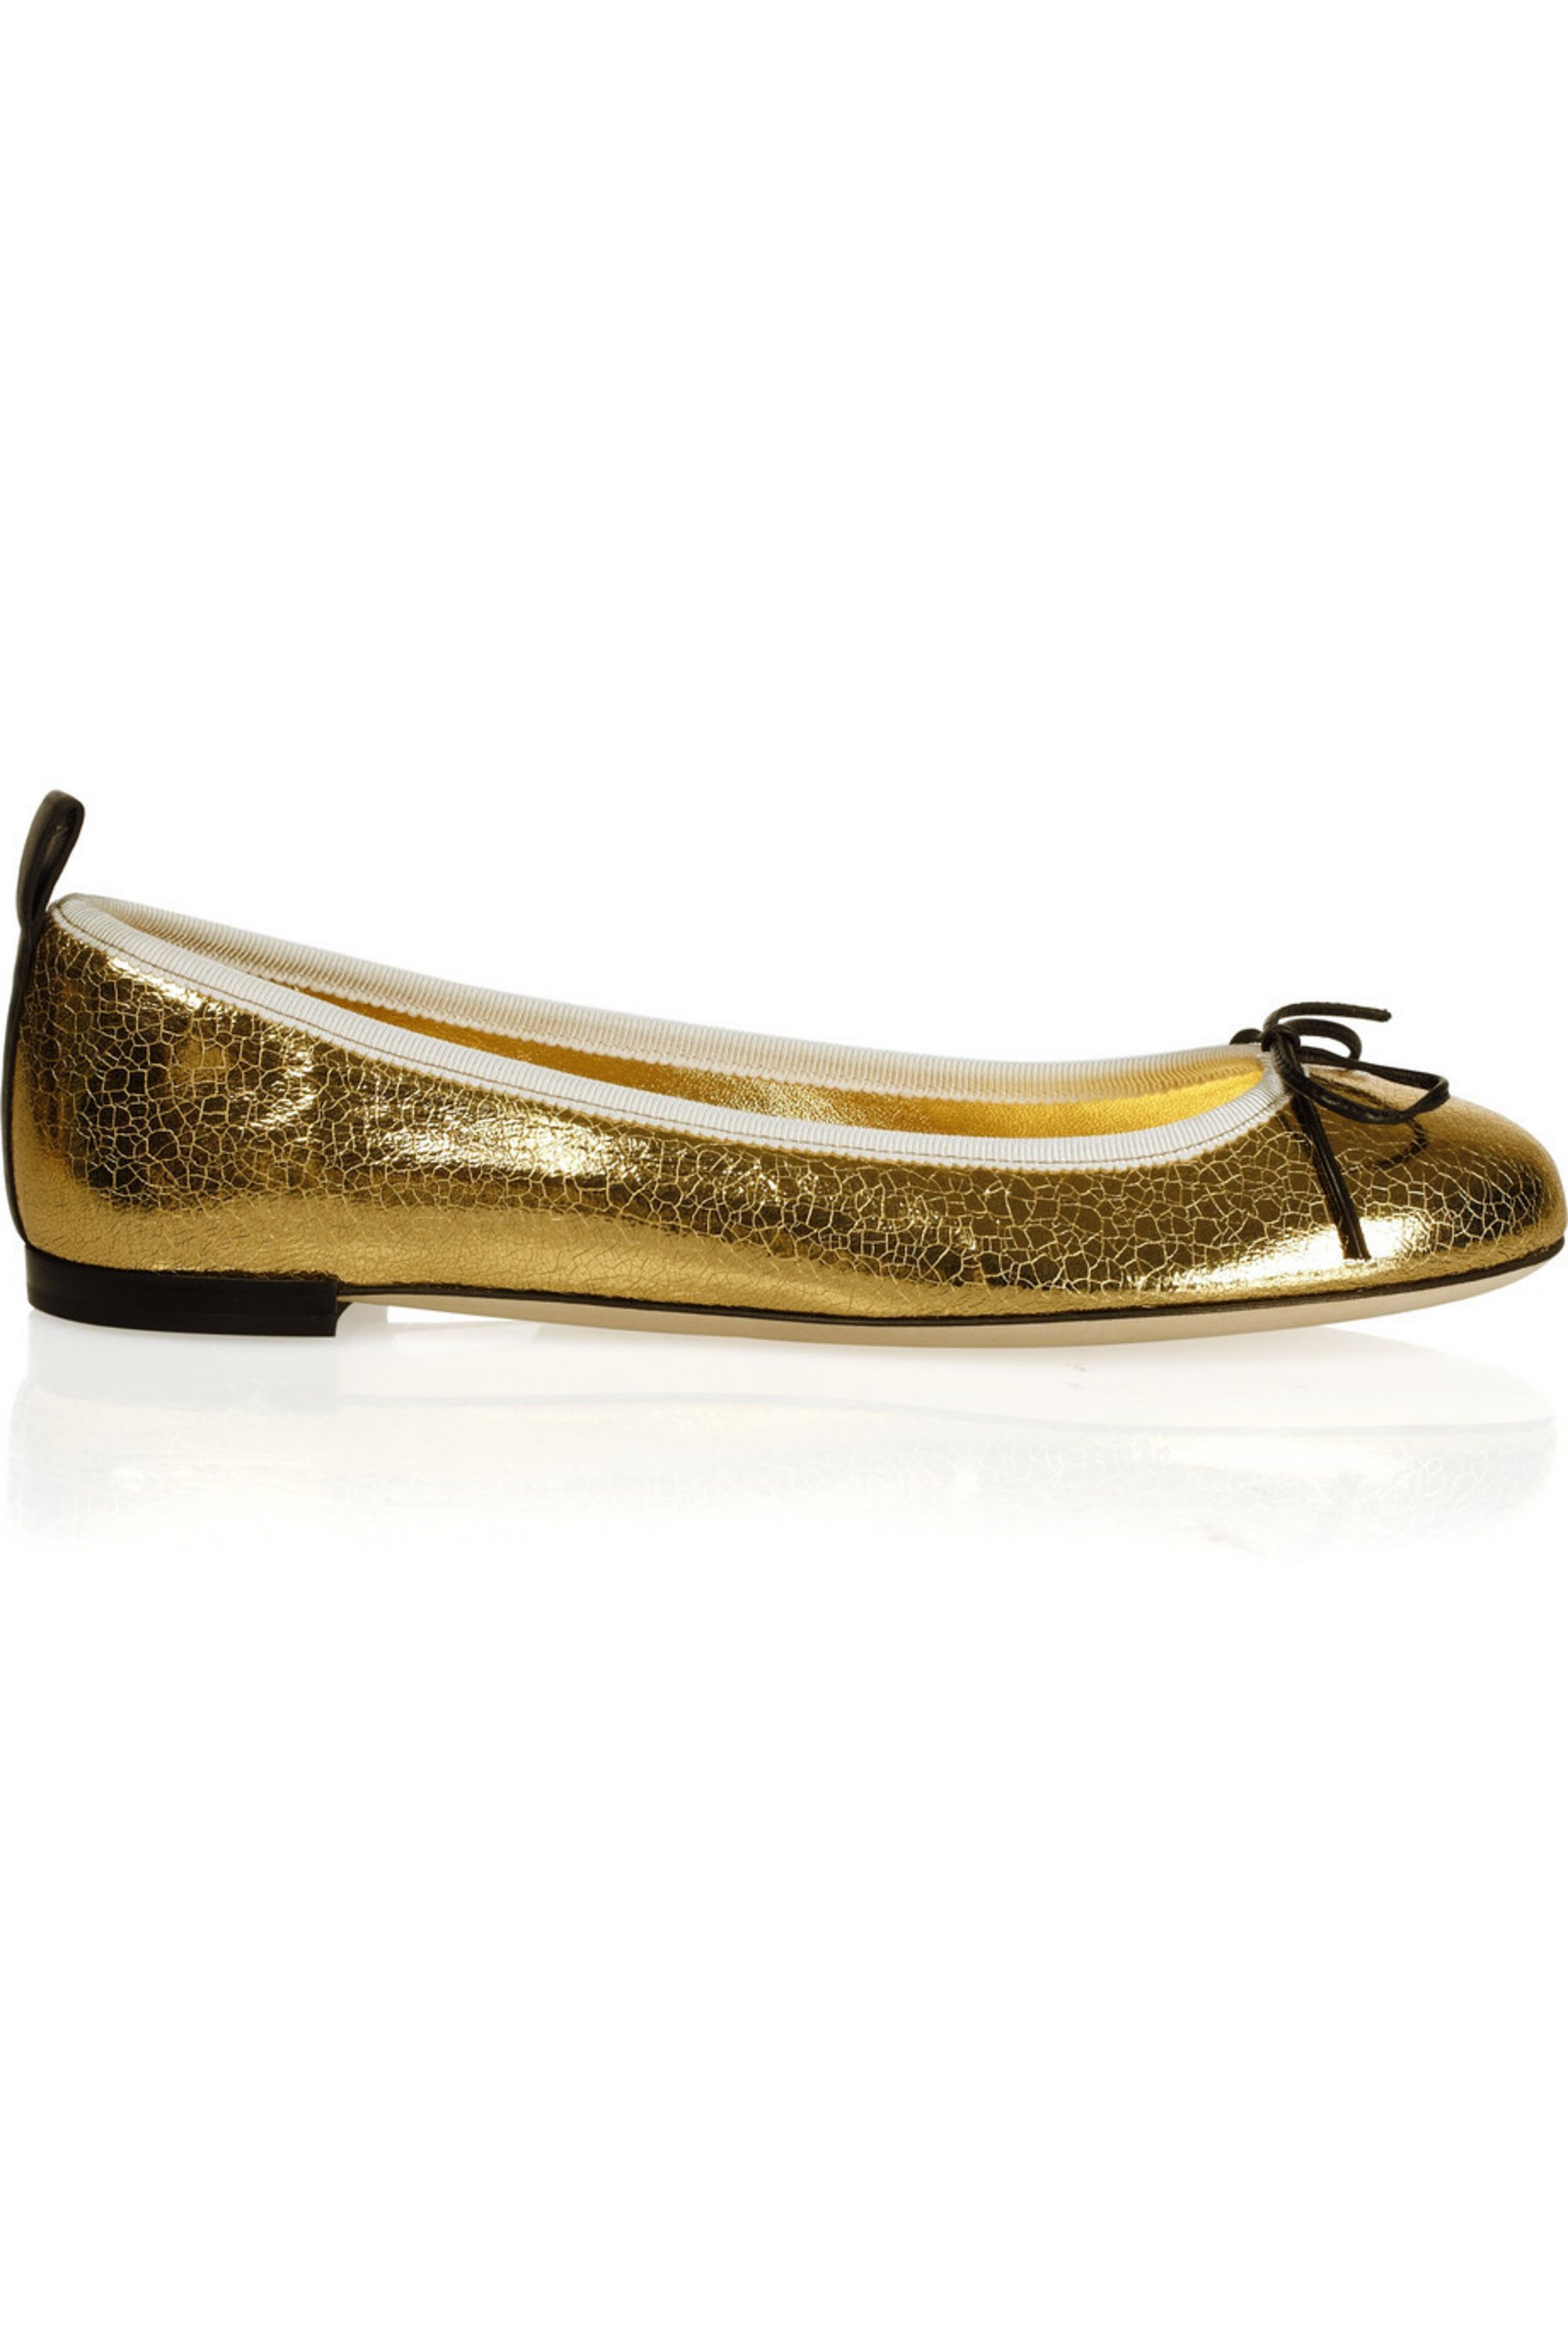 Gucci Metallic cracked-leather ballet flats